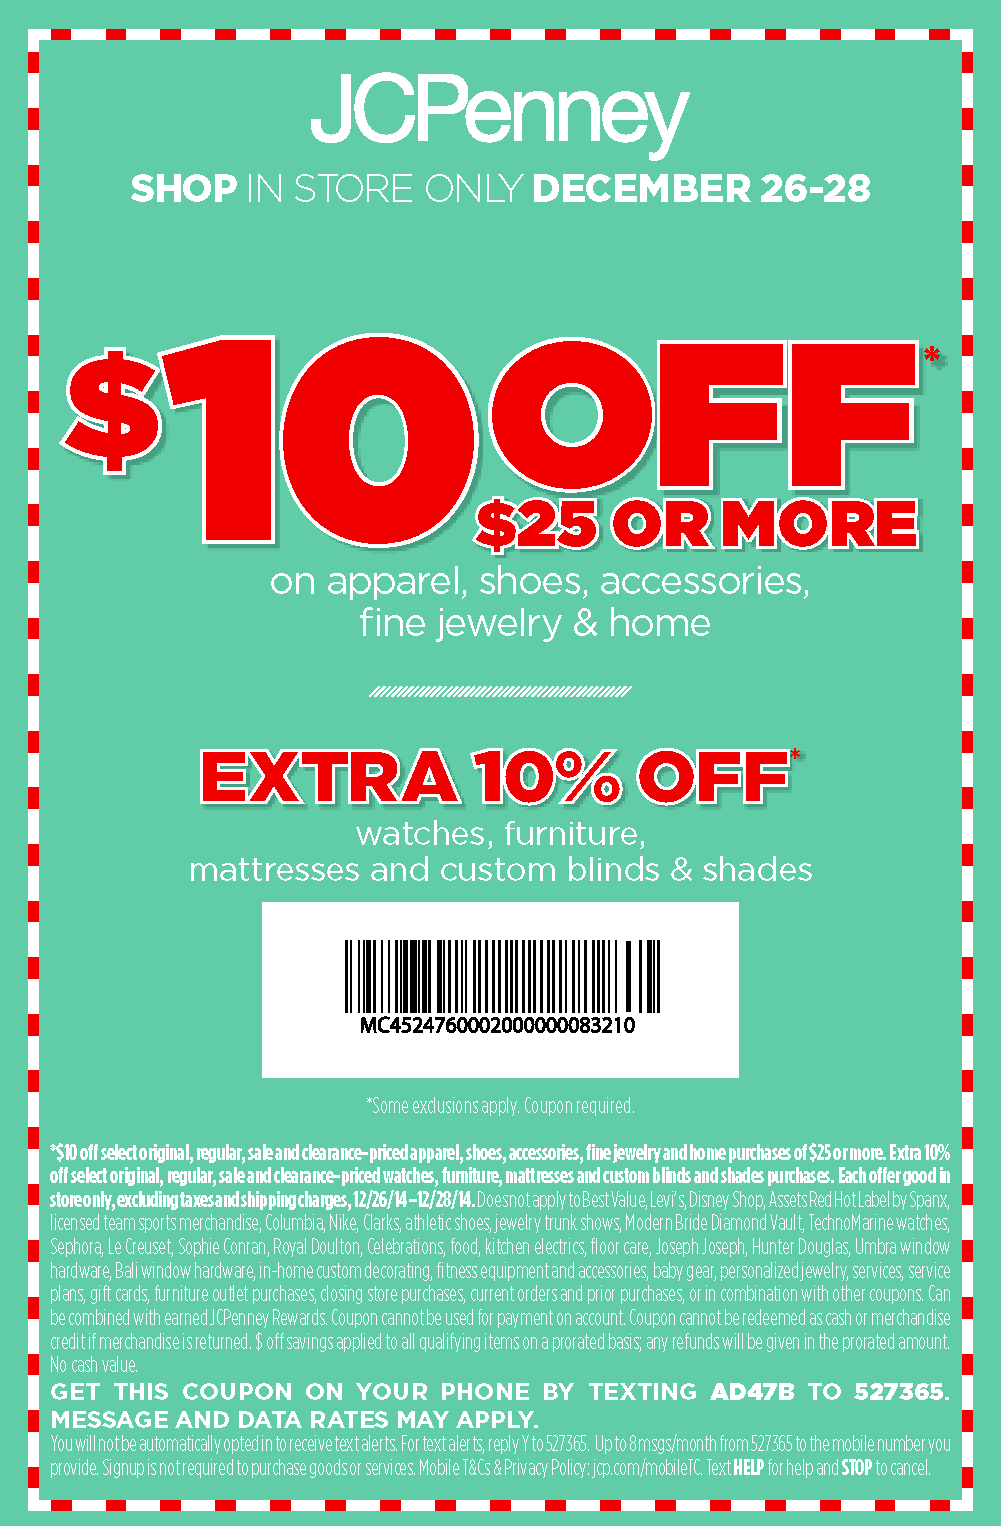 Jcpenney coupon codes 2018